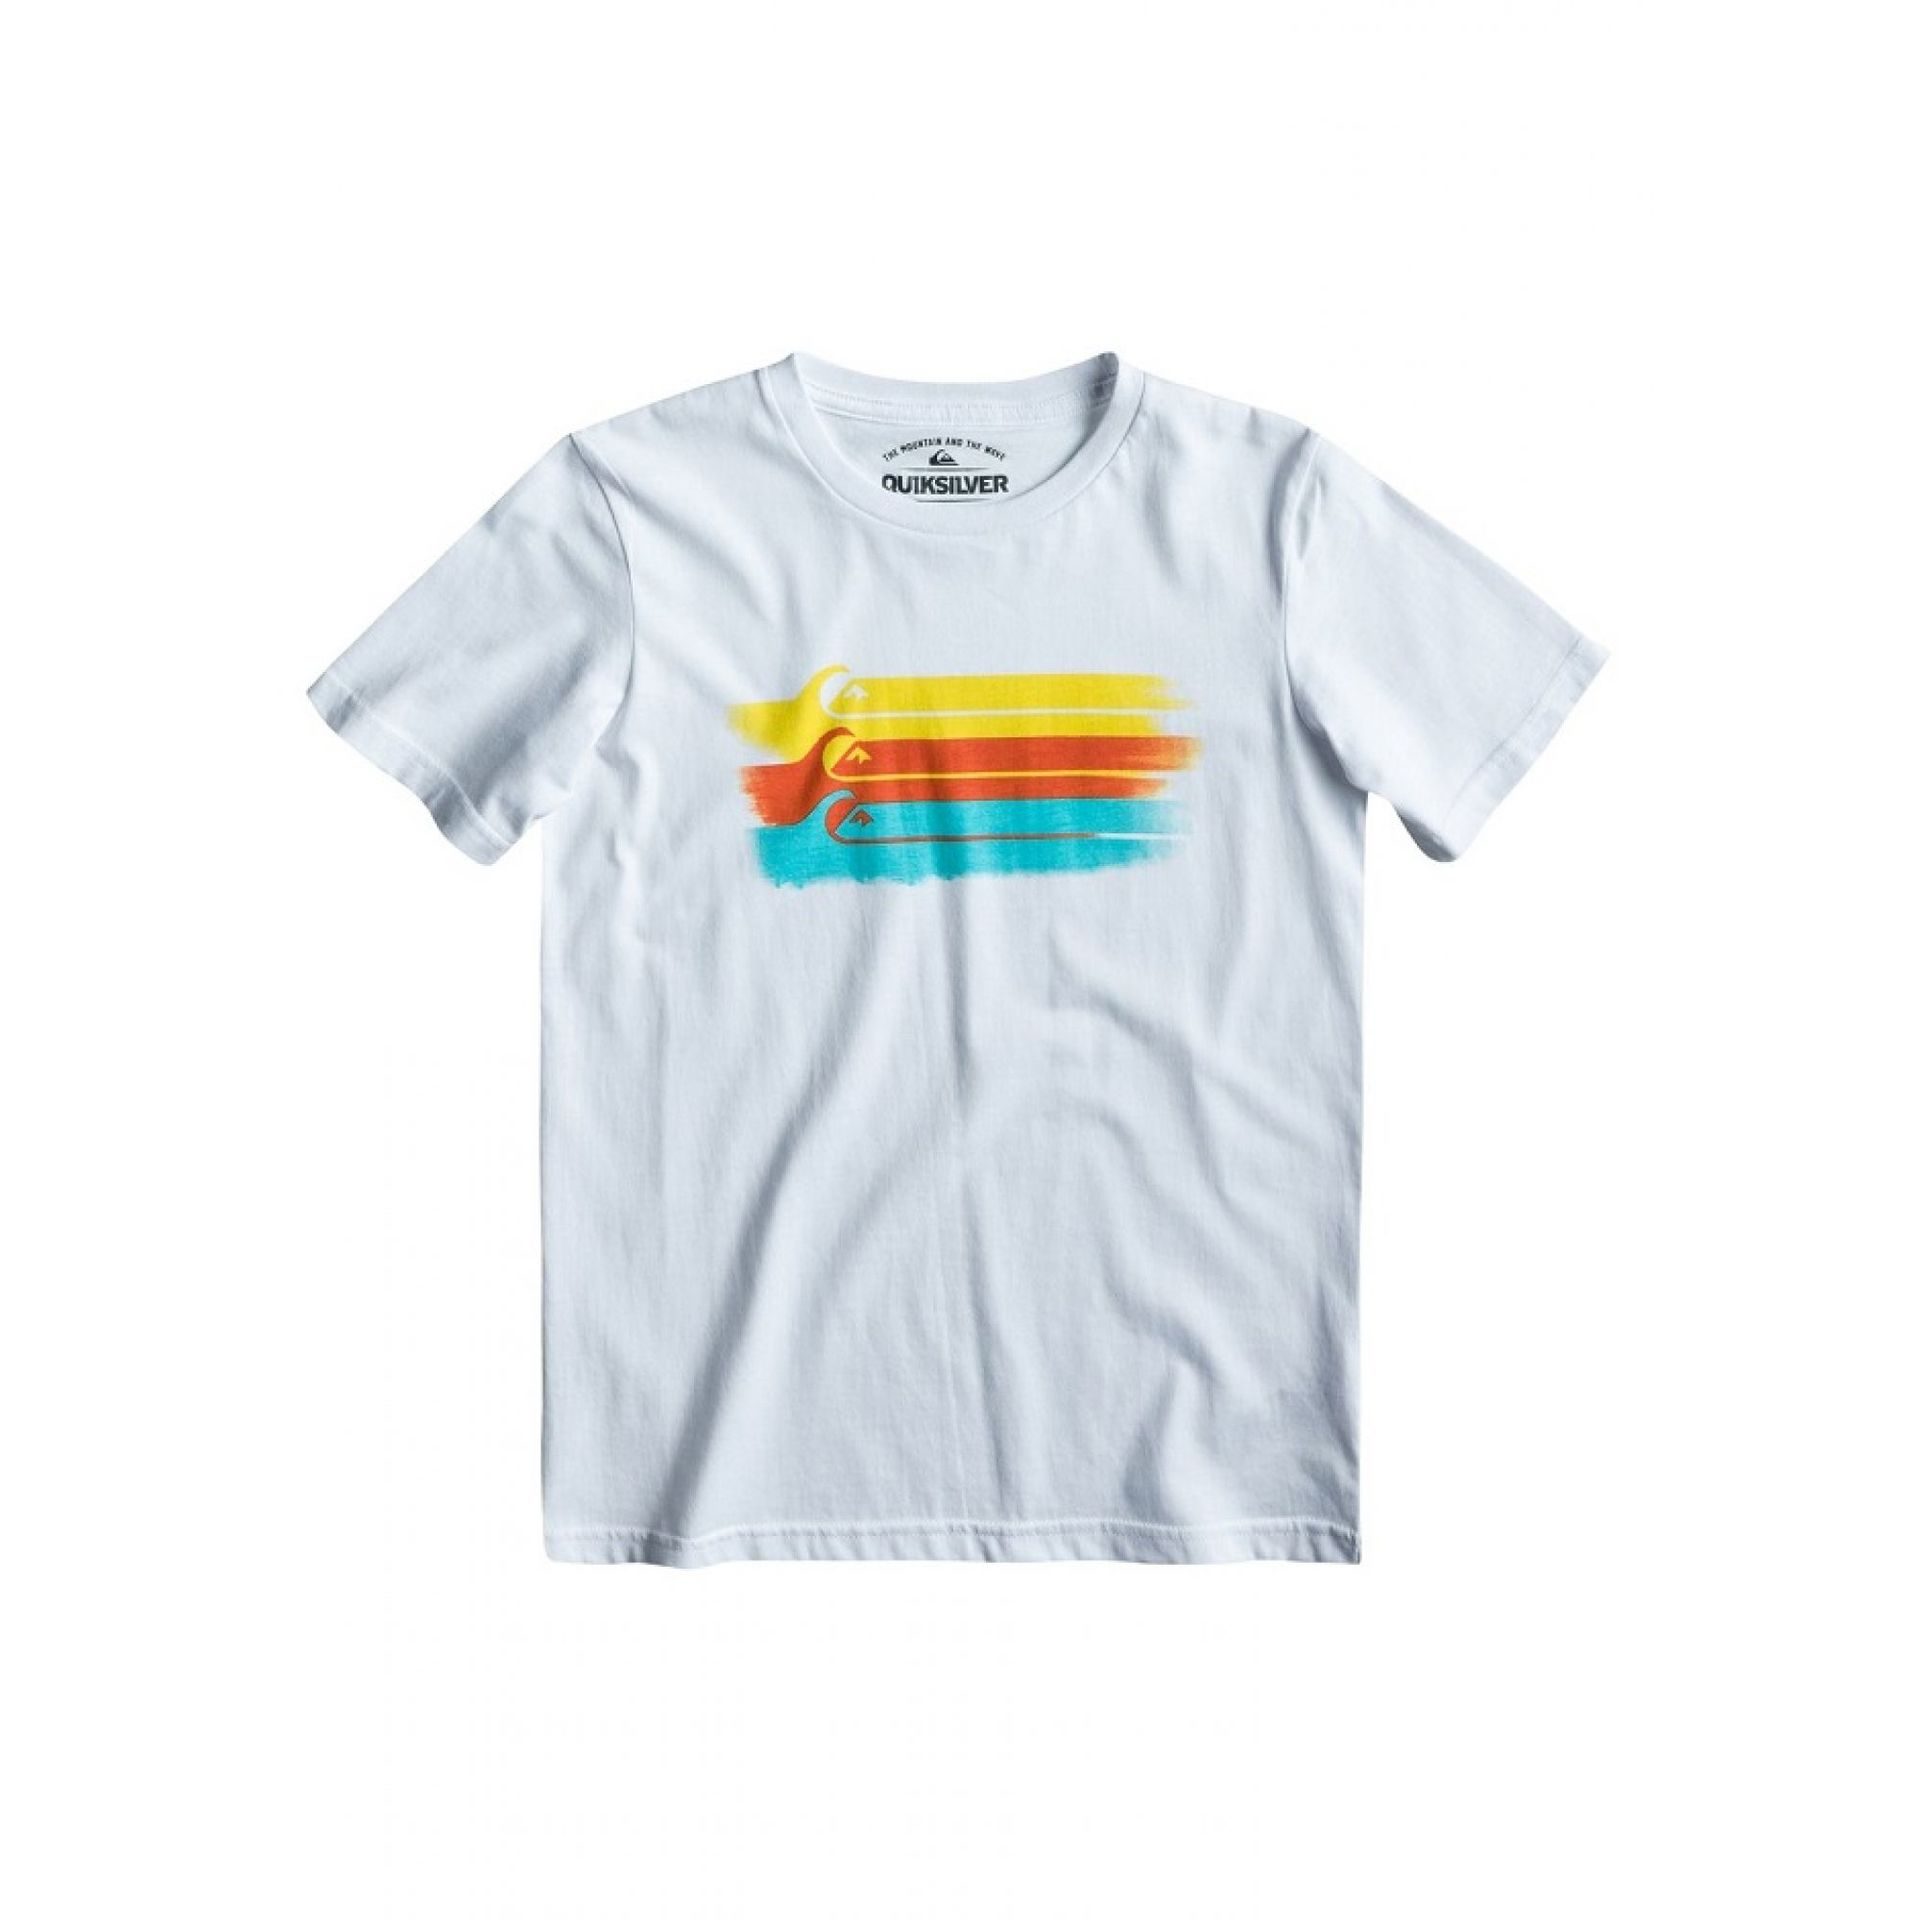 T-SHIRT QUIKSILVER BASIC YOUTH  BIAŁY